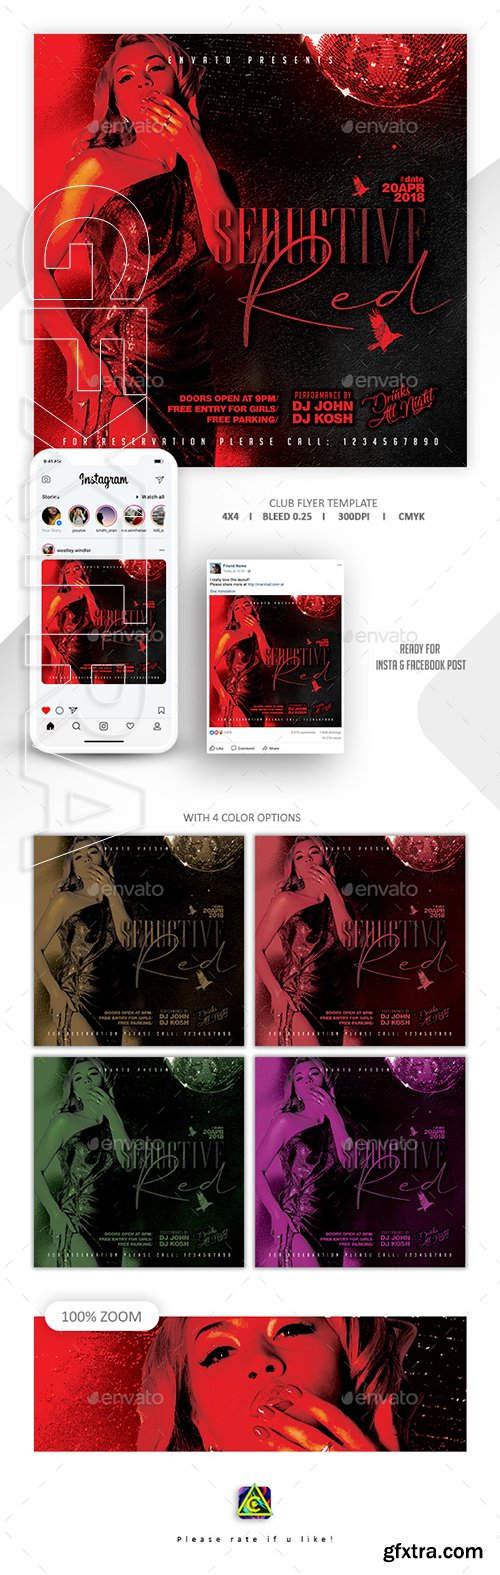 GraphicRiver - Seductive Red Flyer Template 22759119